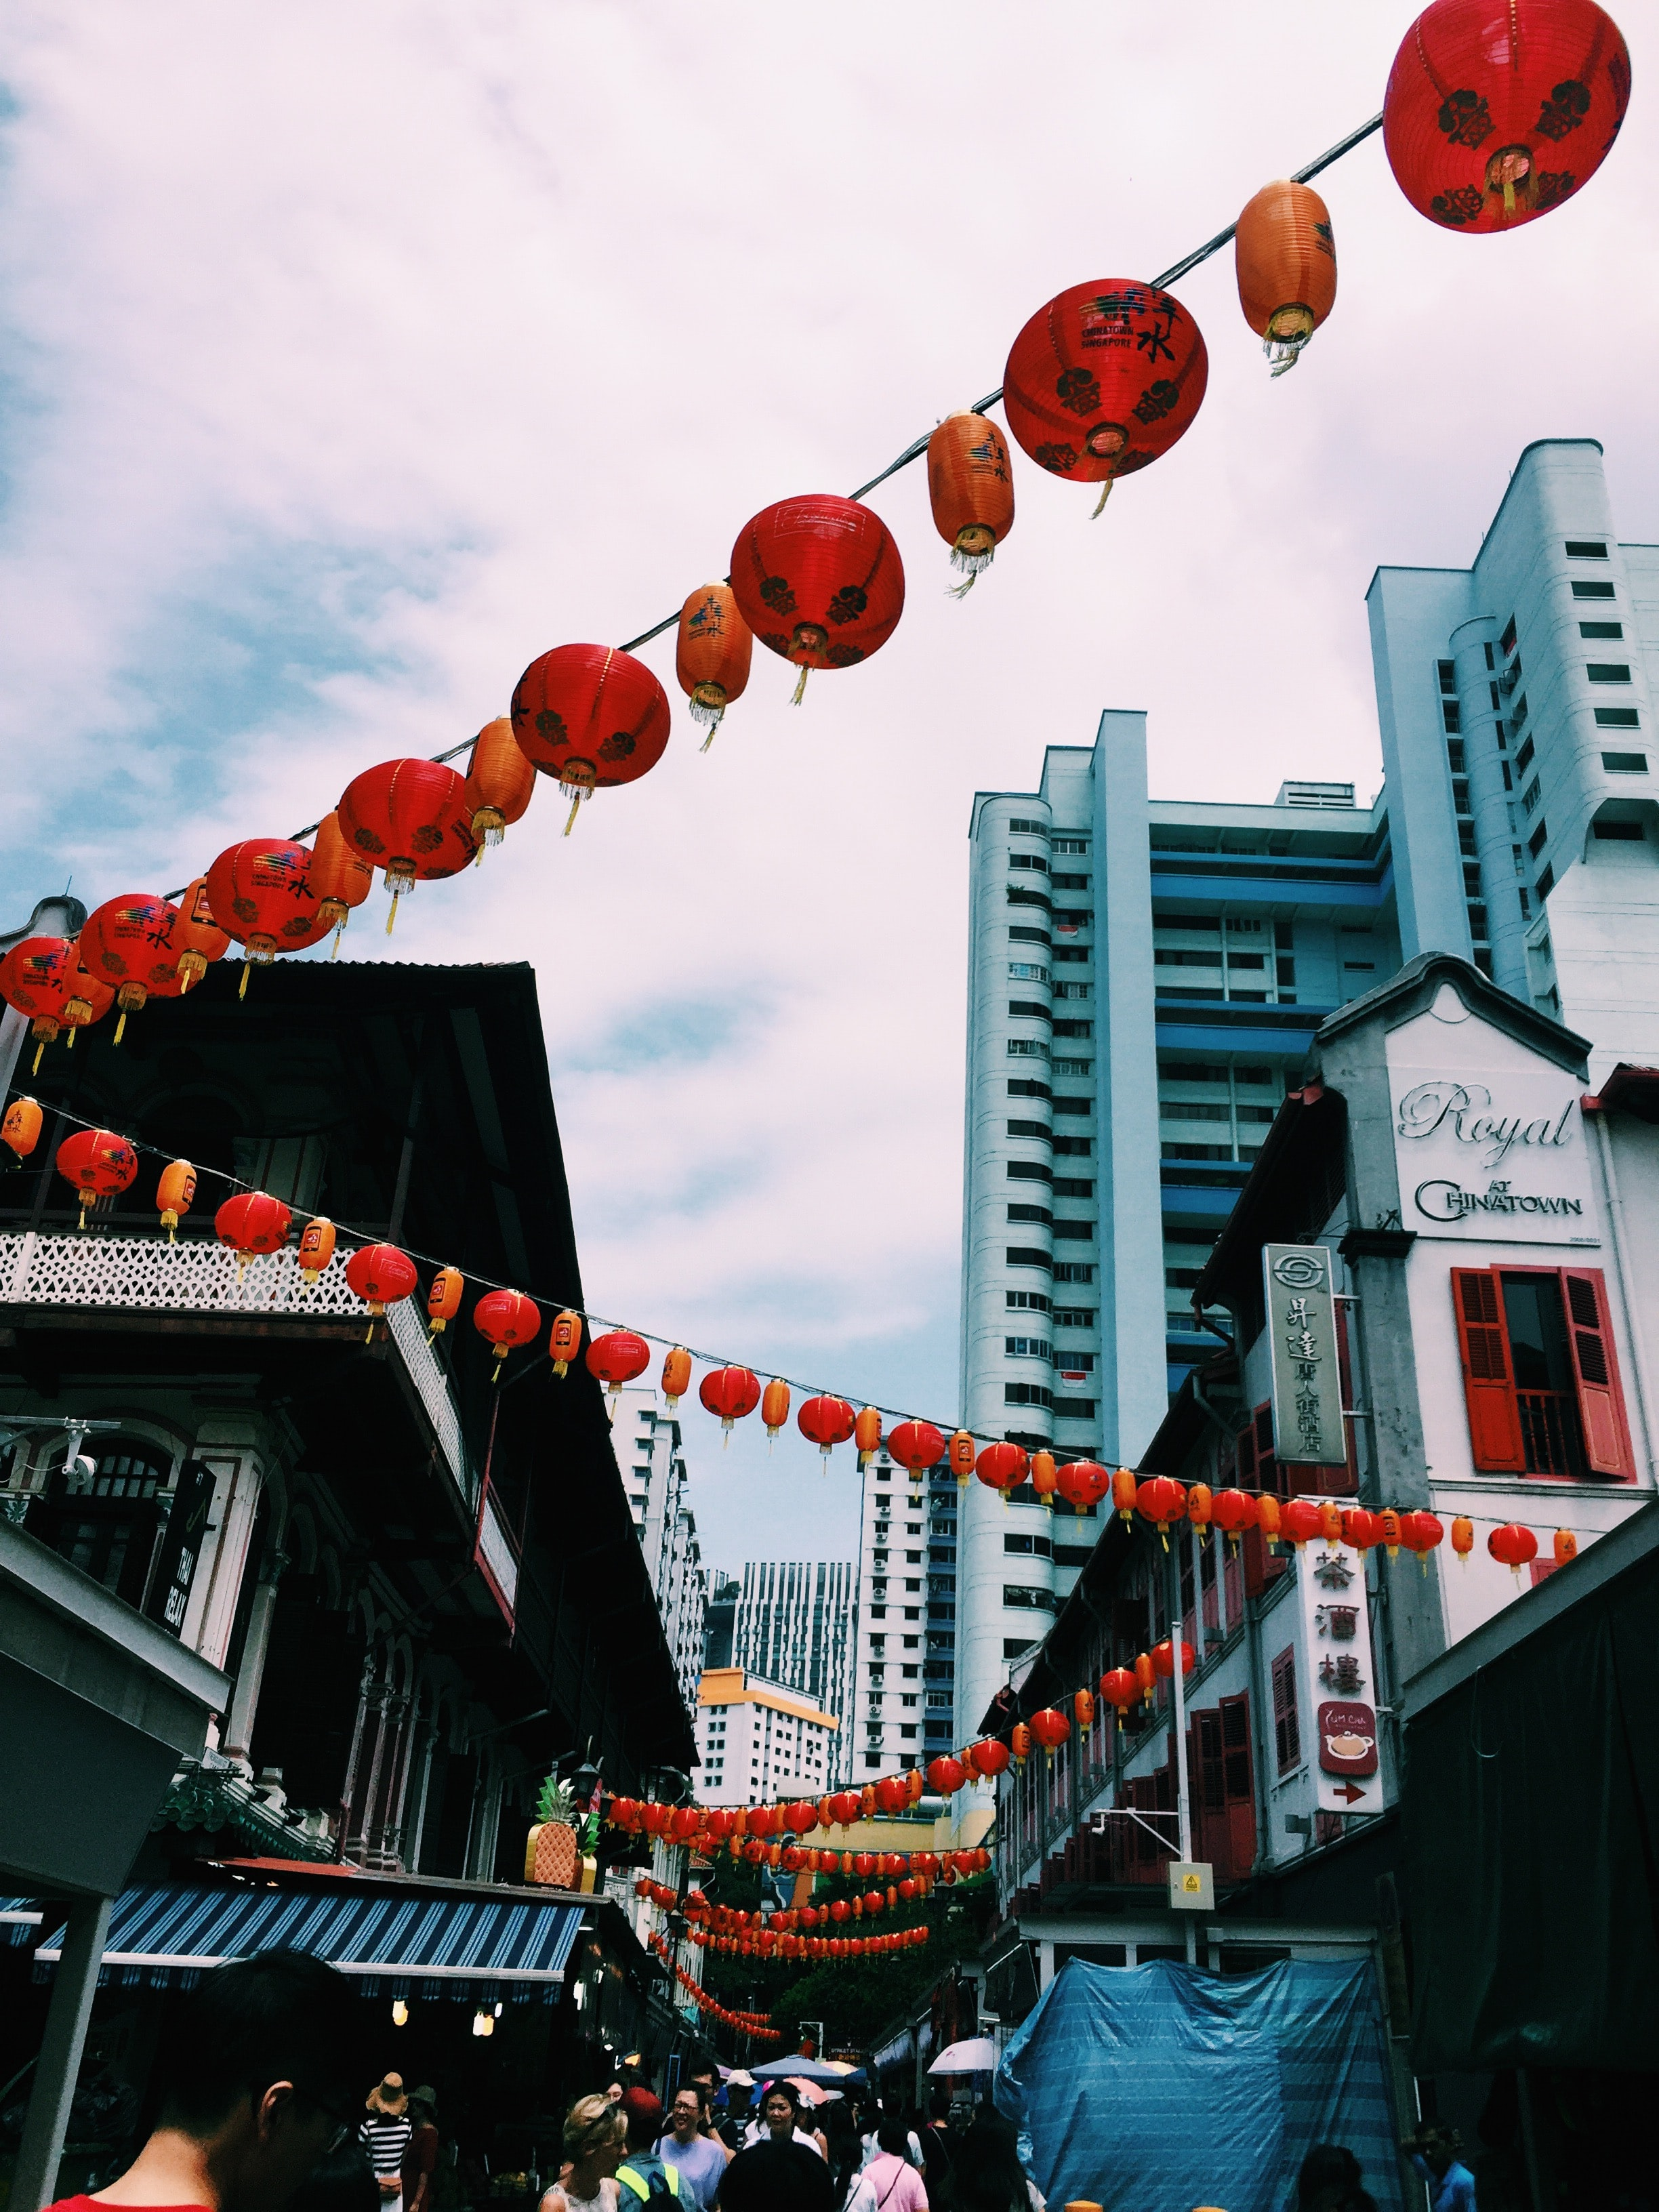 red and orange lanterns hanged above alleyway surrounded with group of people